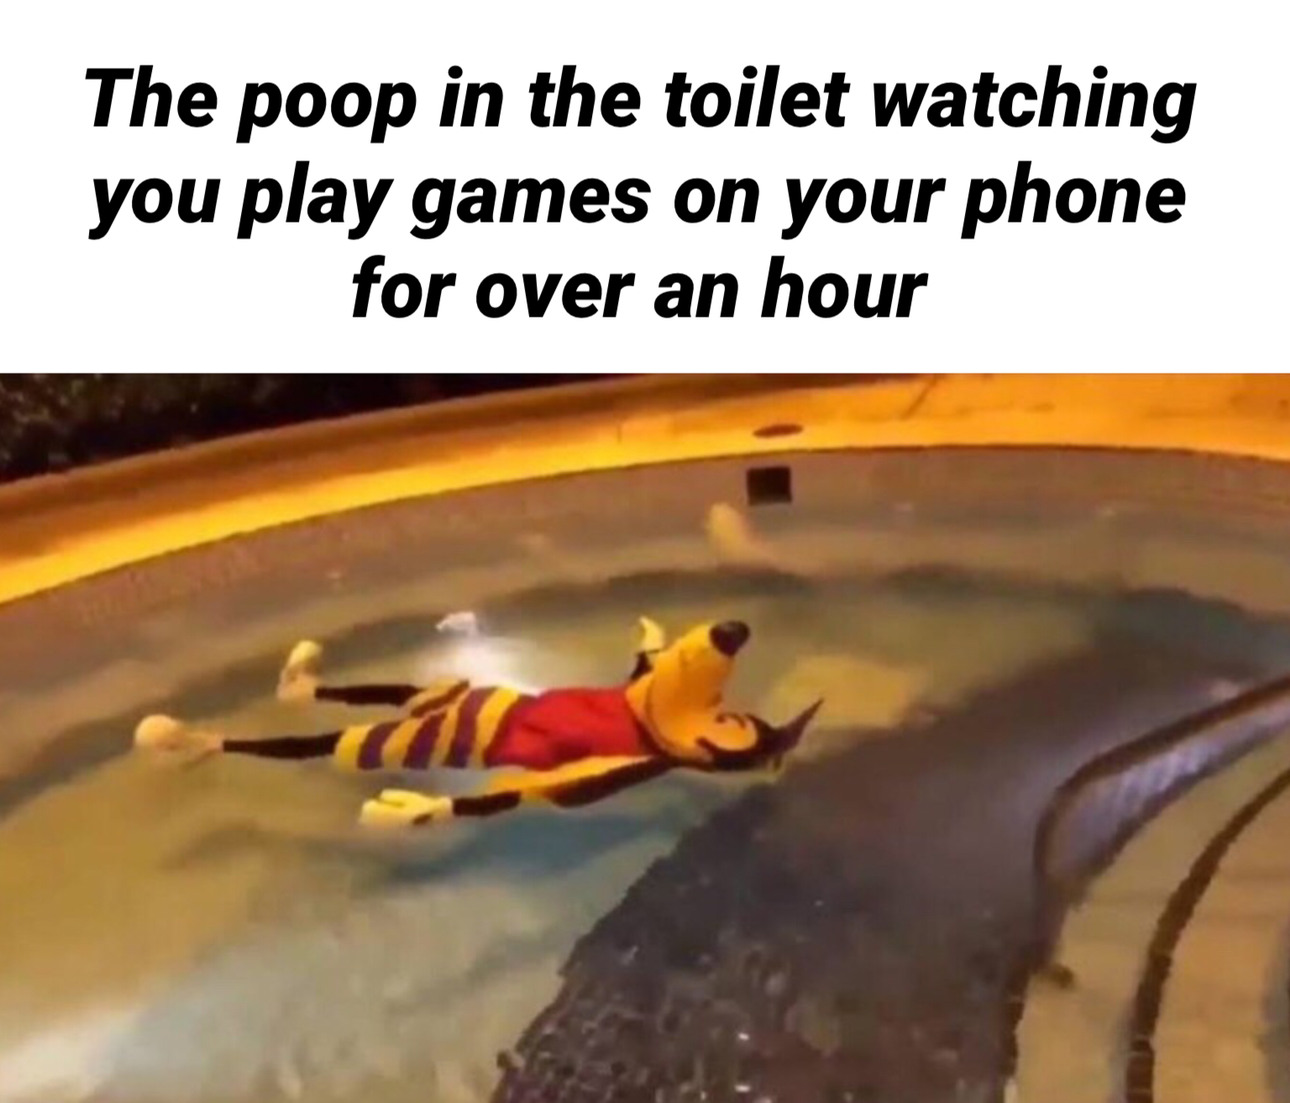 I'm bouta take 3 seconds pooping now - meme